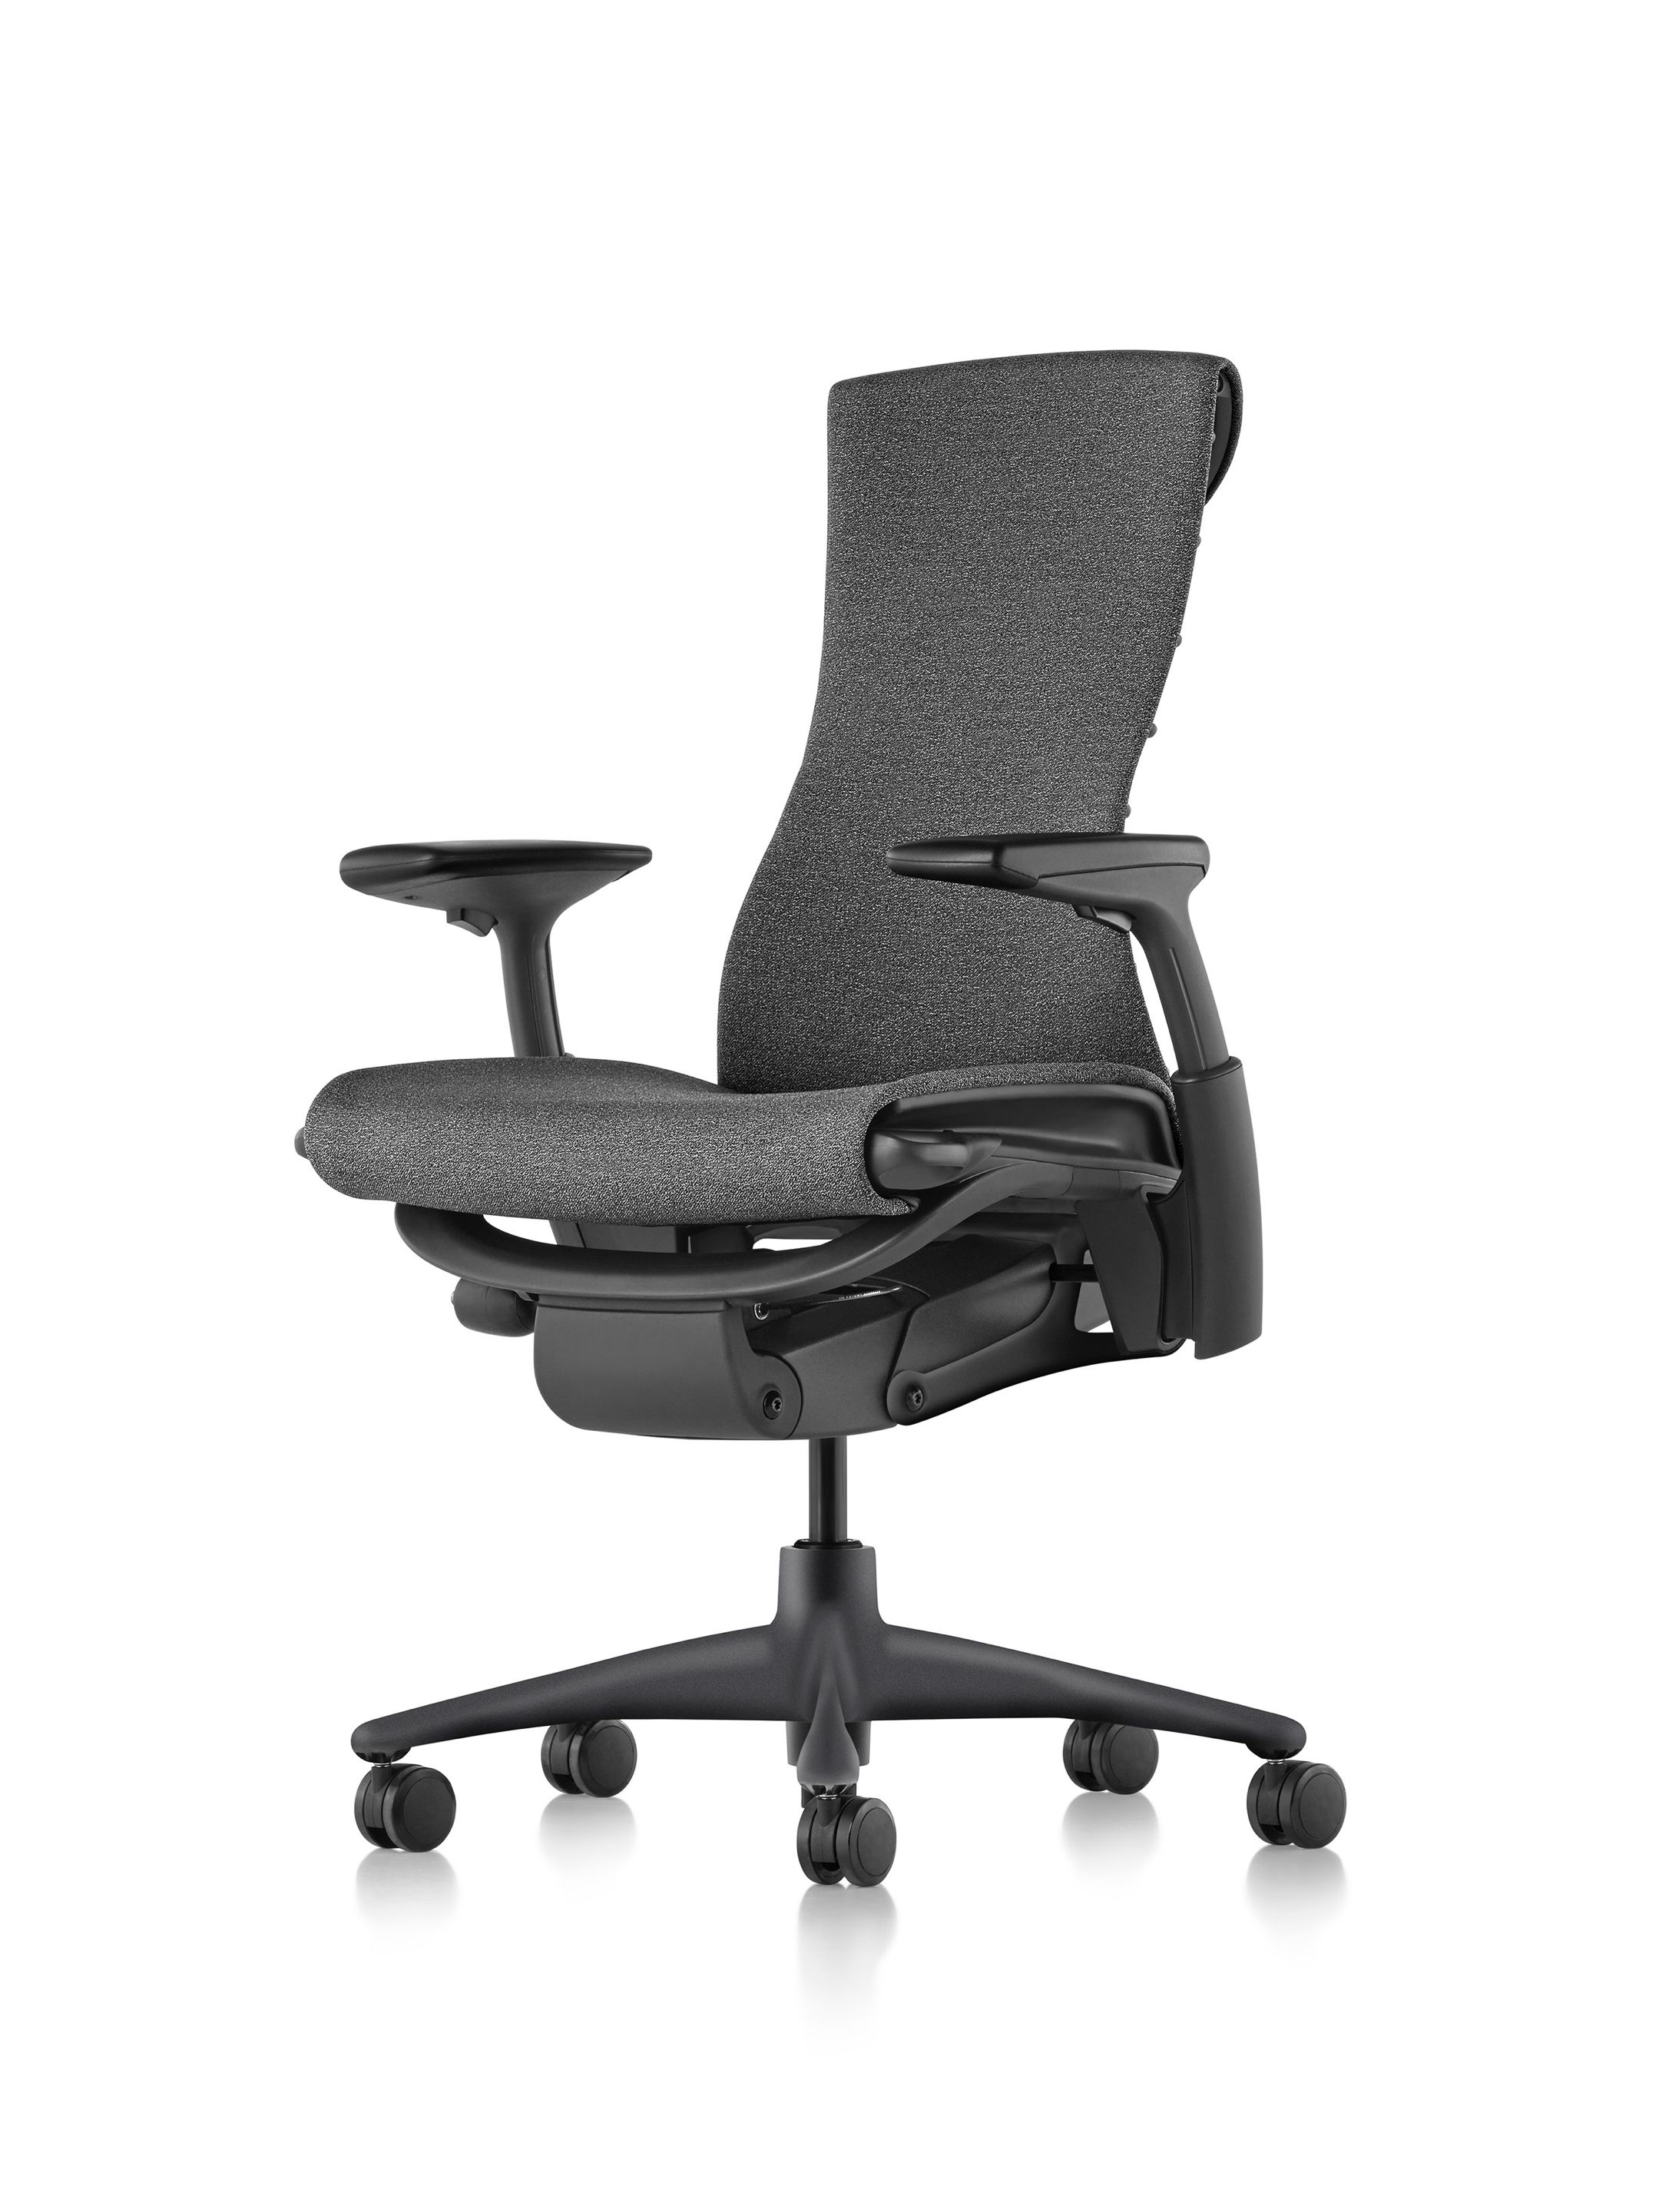 desk chair herman miller dining room tables with chairs embody workstation work